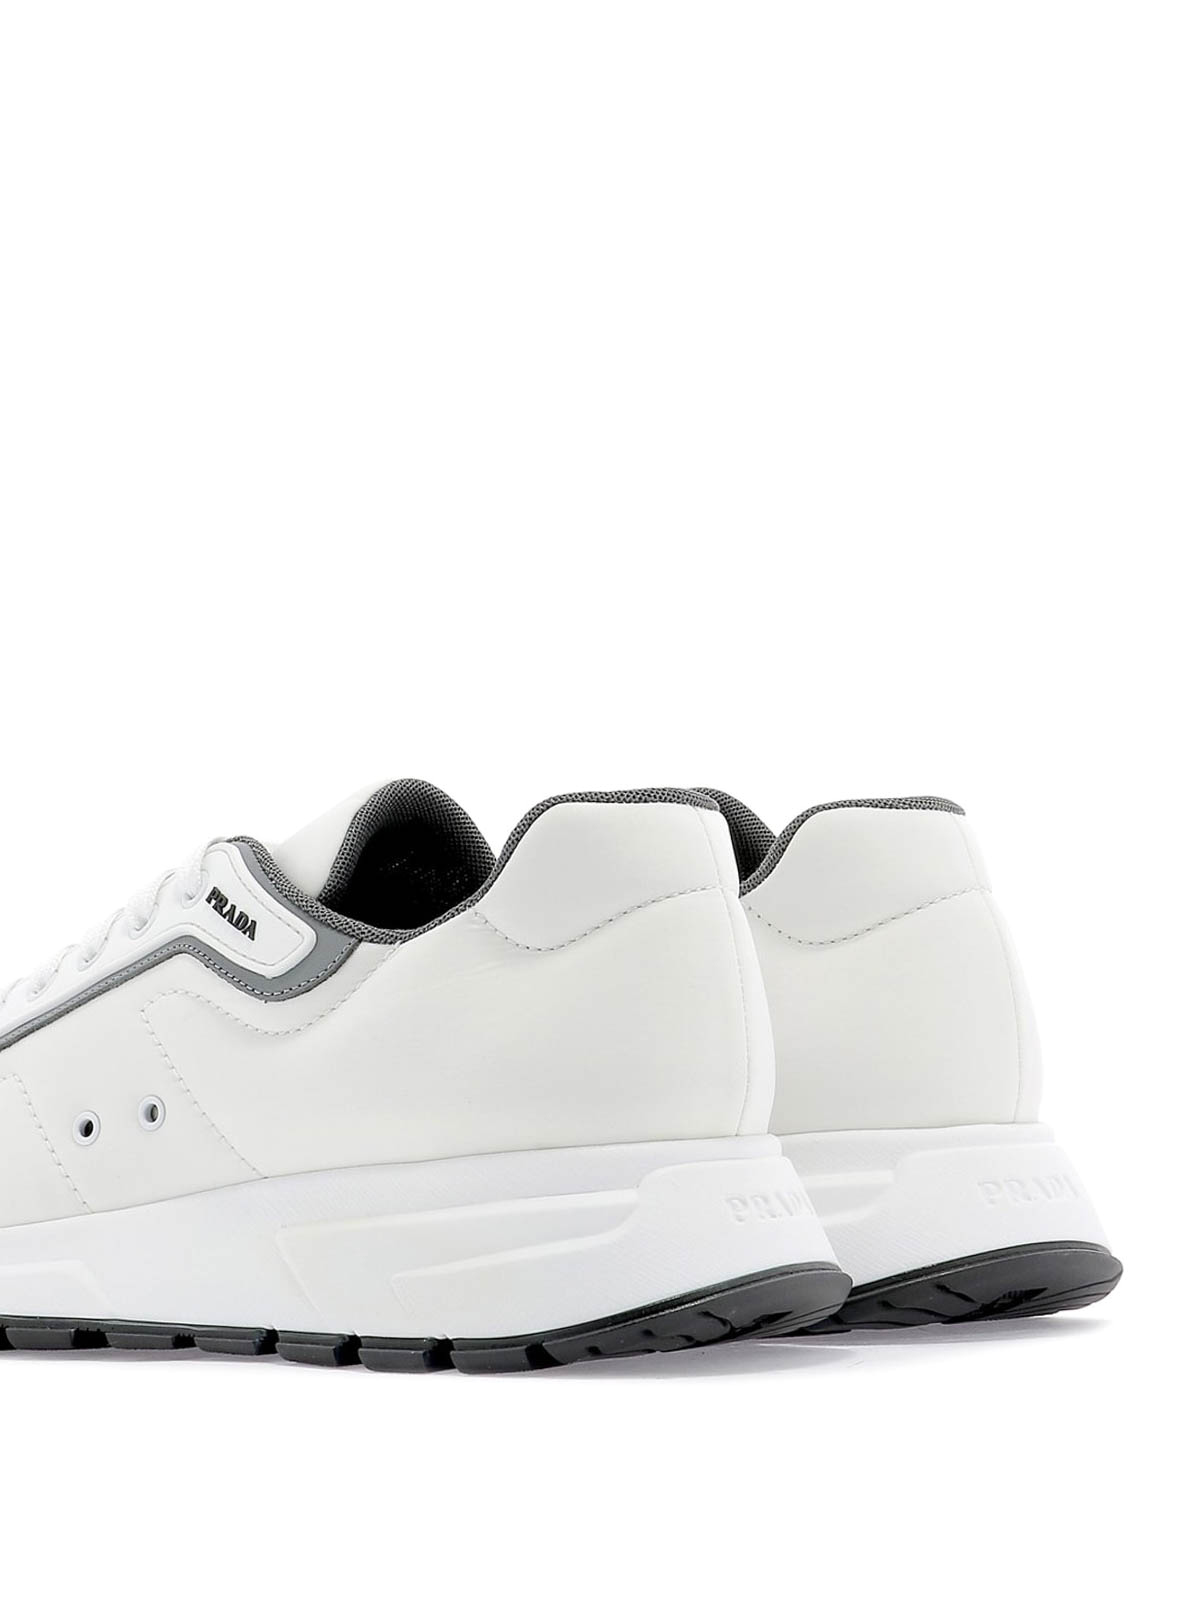 Gabardine Soft white low top sneakers